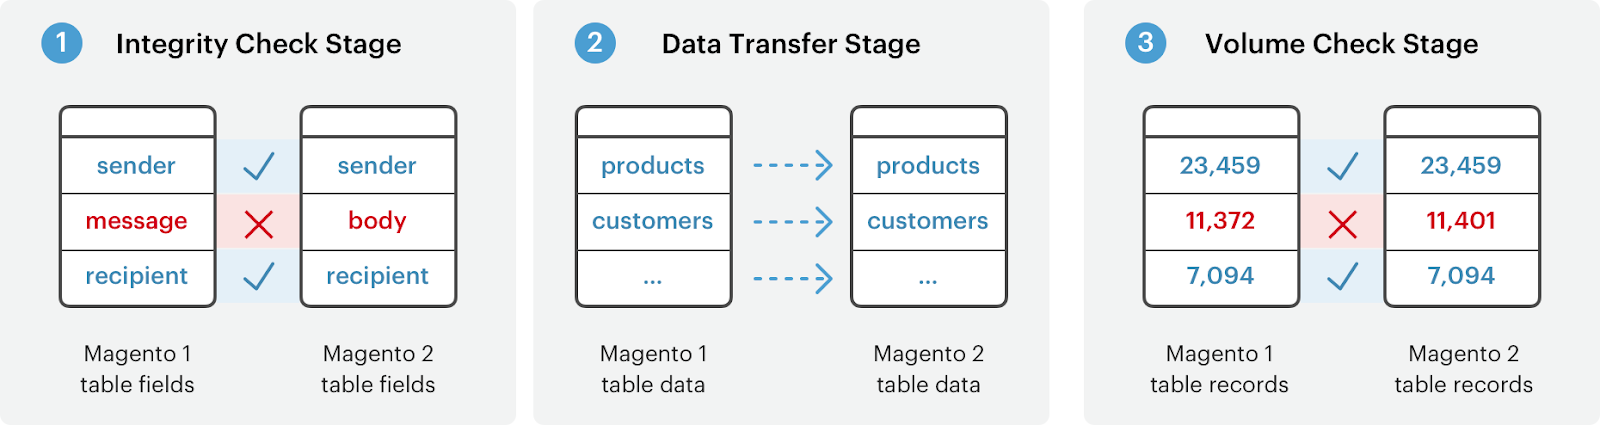 Magento migration stages